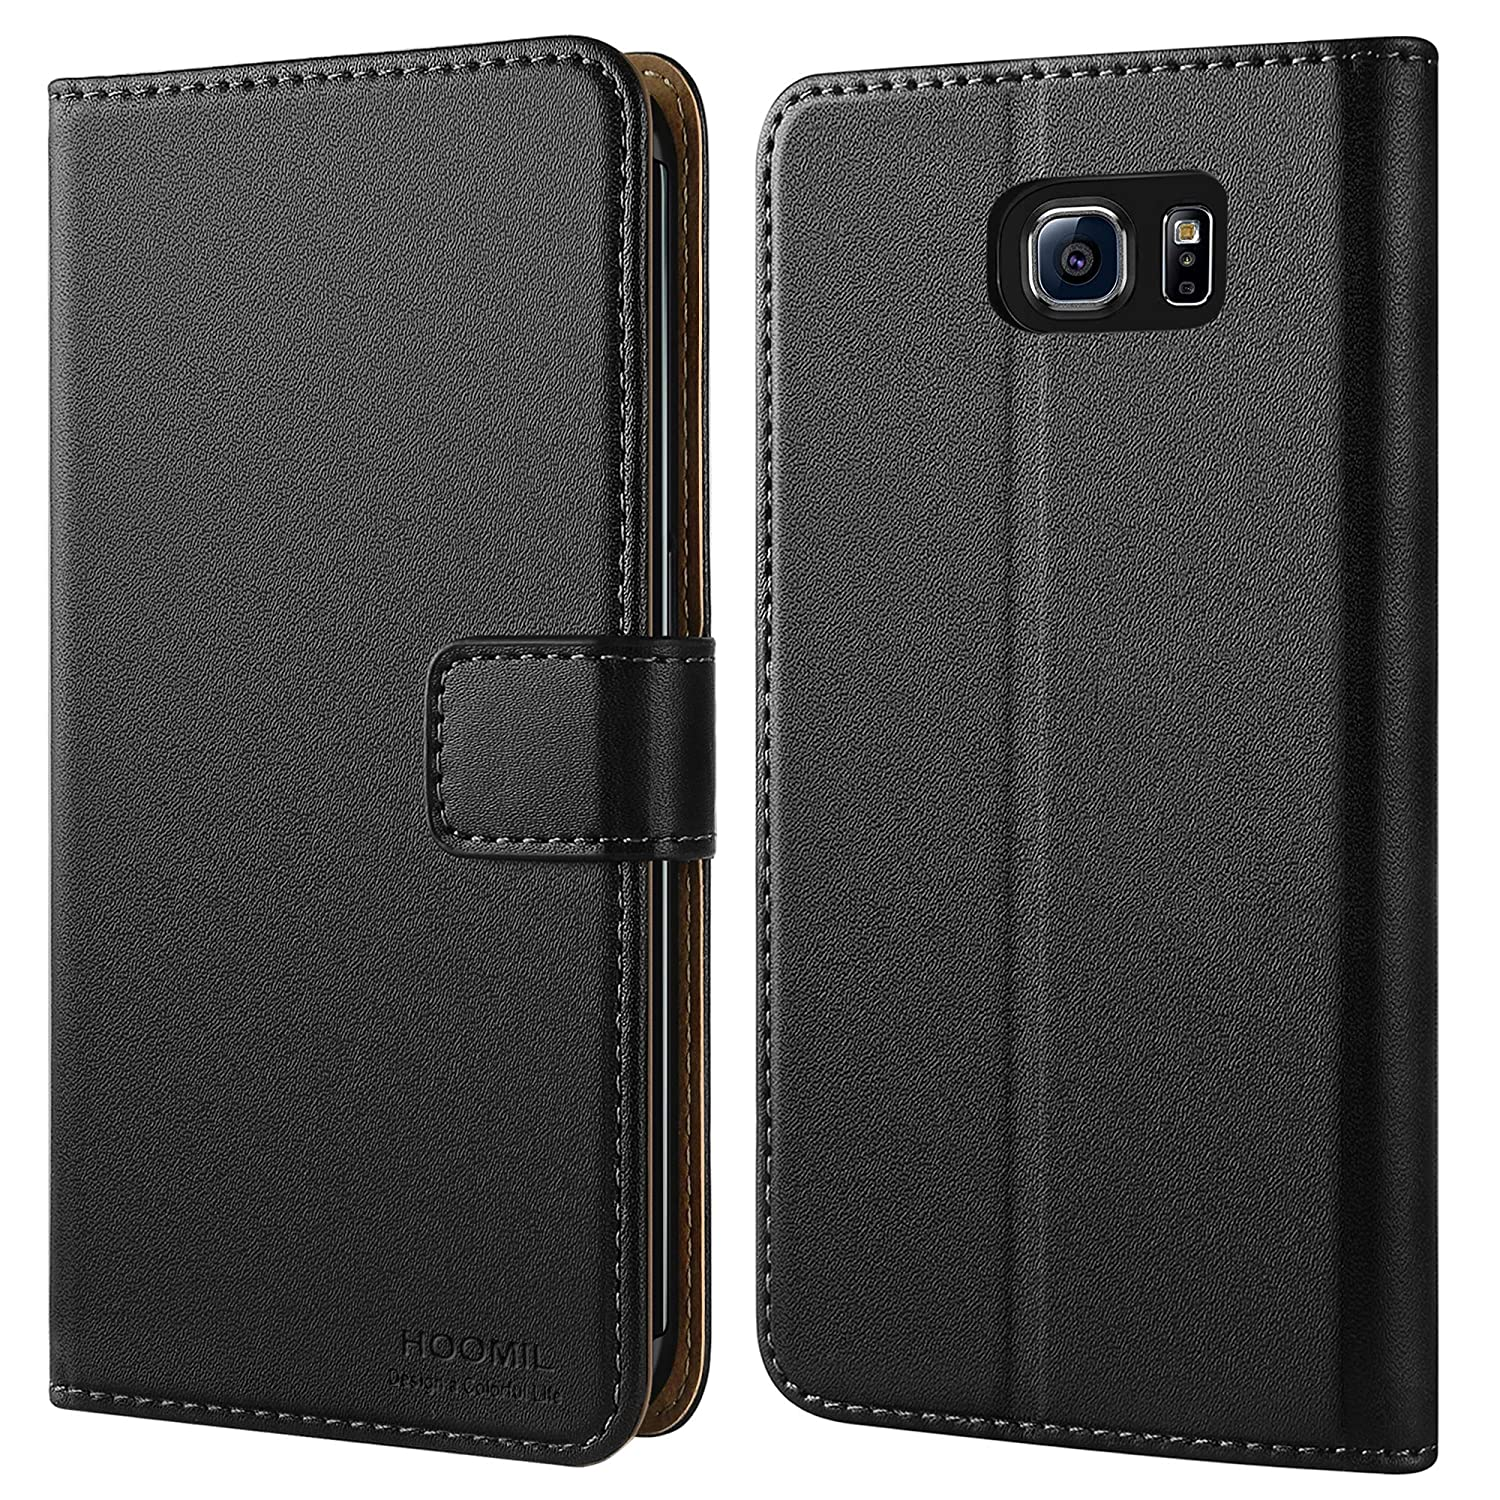 competitive price 3ff59 e211c HOOMIL Case Compatible with Samsung Galaxy S6 Edge, Premium Leather Flip  Wallet Phone Case for Samsung Galaxy S6 Edge Cover (Black)